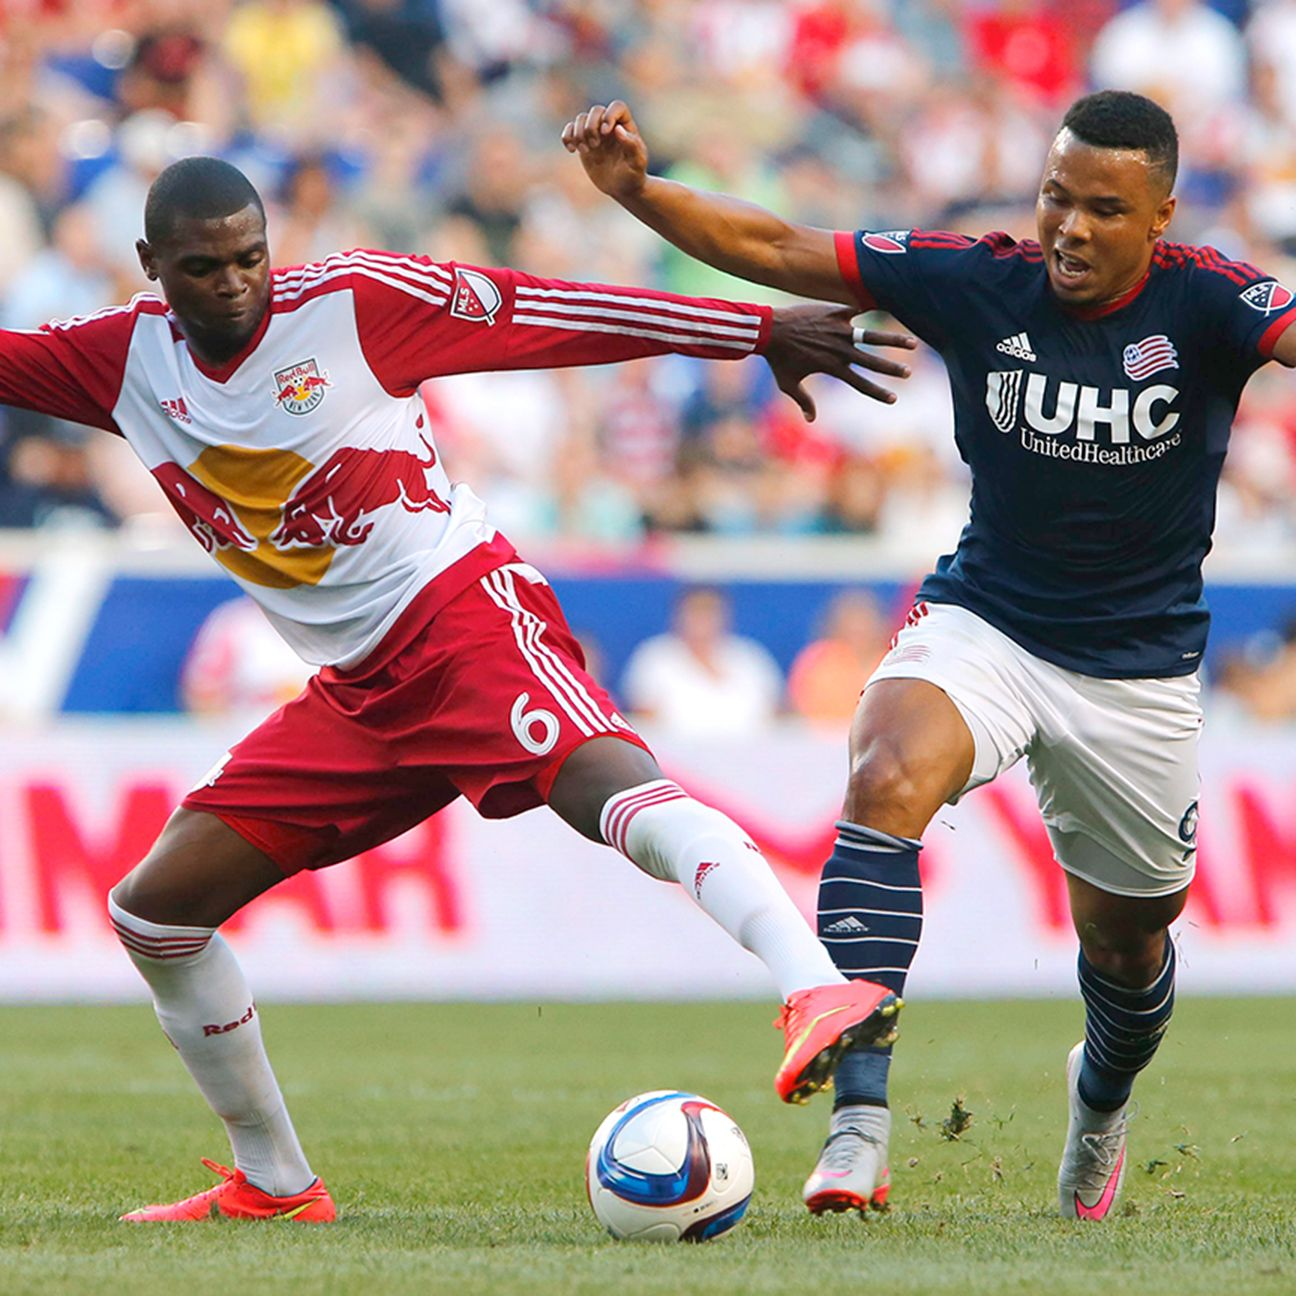 Charlie Davis tries to keep up with Anthony Wallace during the Revolution's 4-1 loss at Red Bull Arena last weekend.